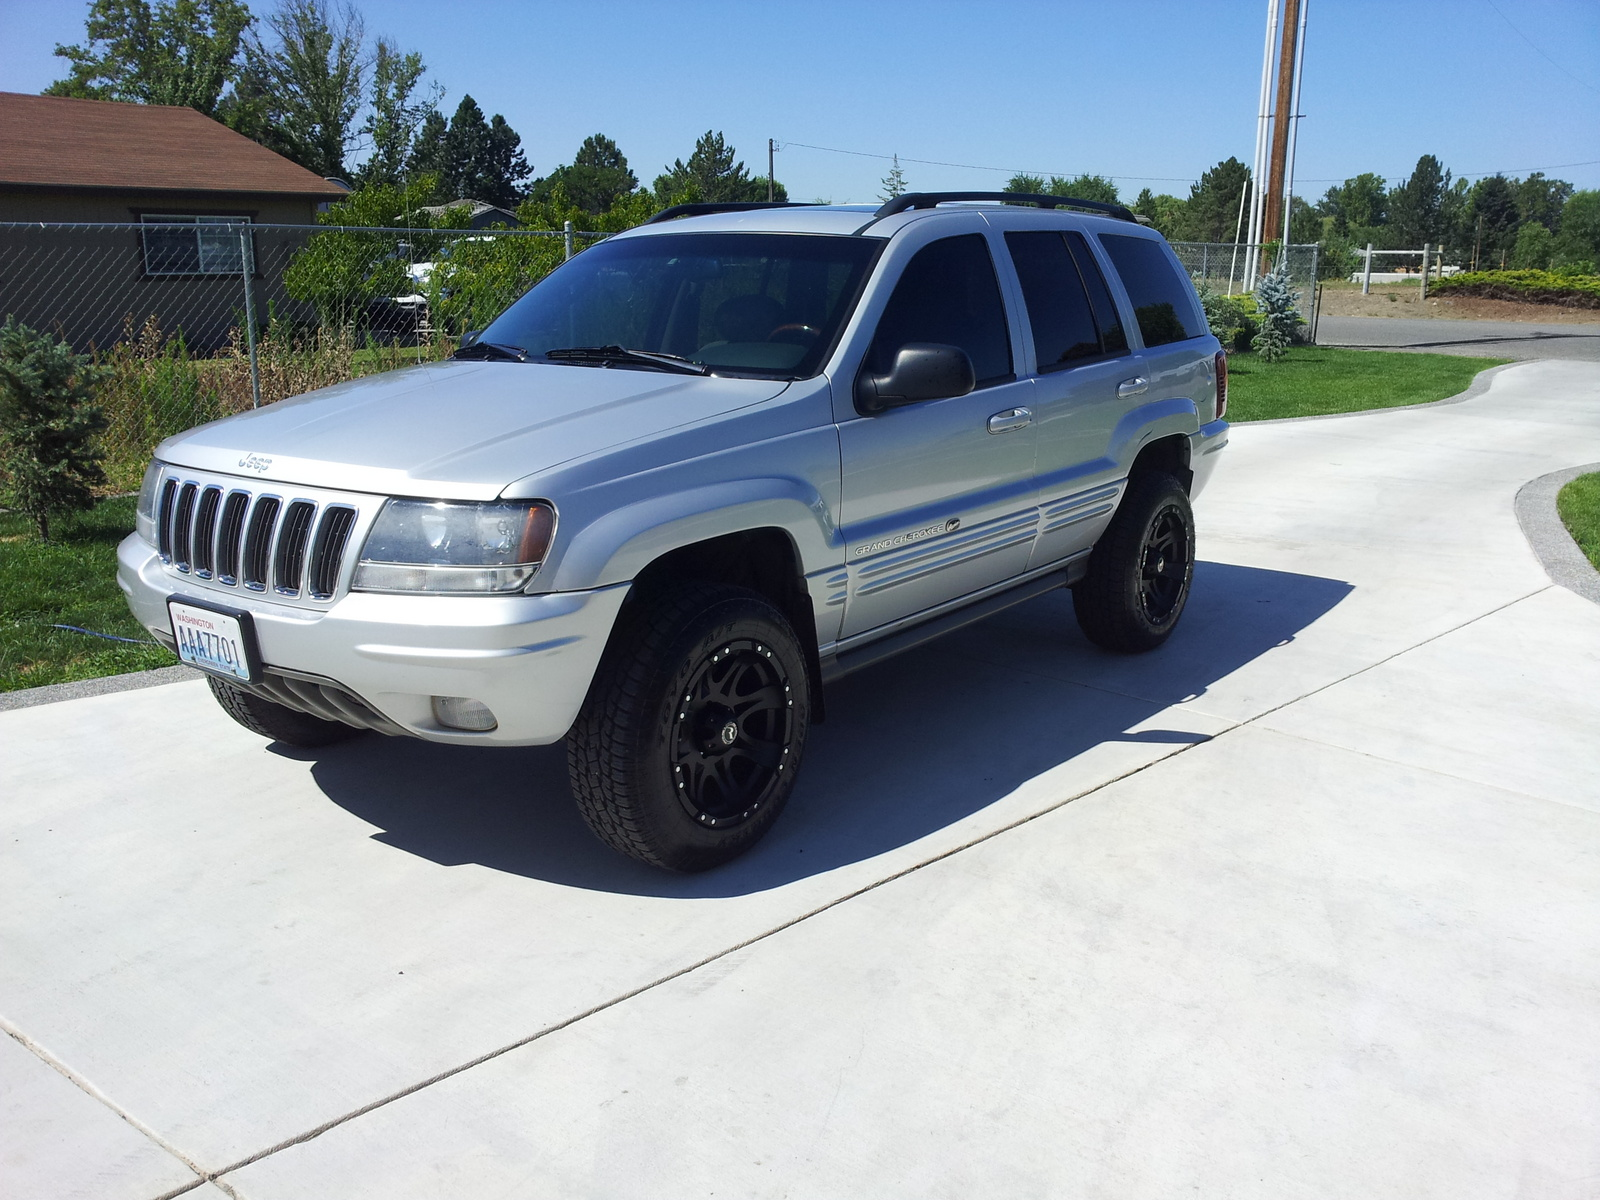 2003 jeep grand cherokee overland 4wd picture exterior. Cars Review. Best American Auto & Cars Review